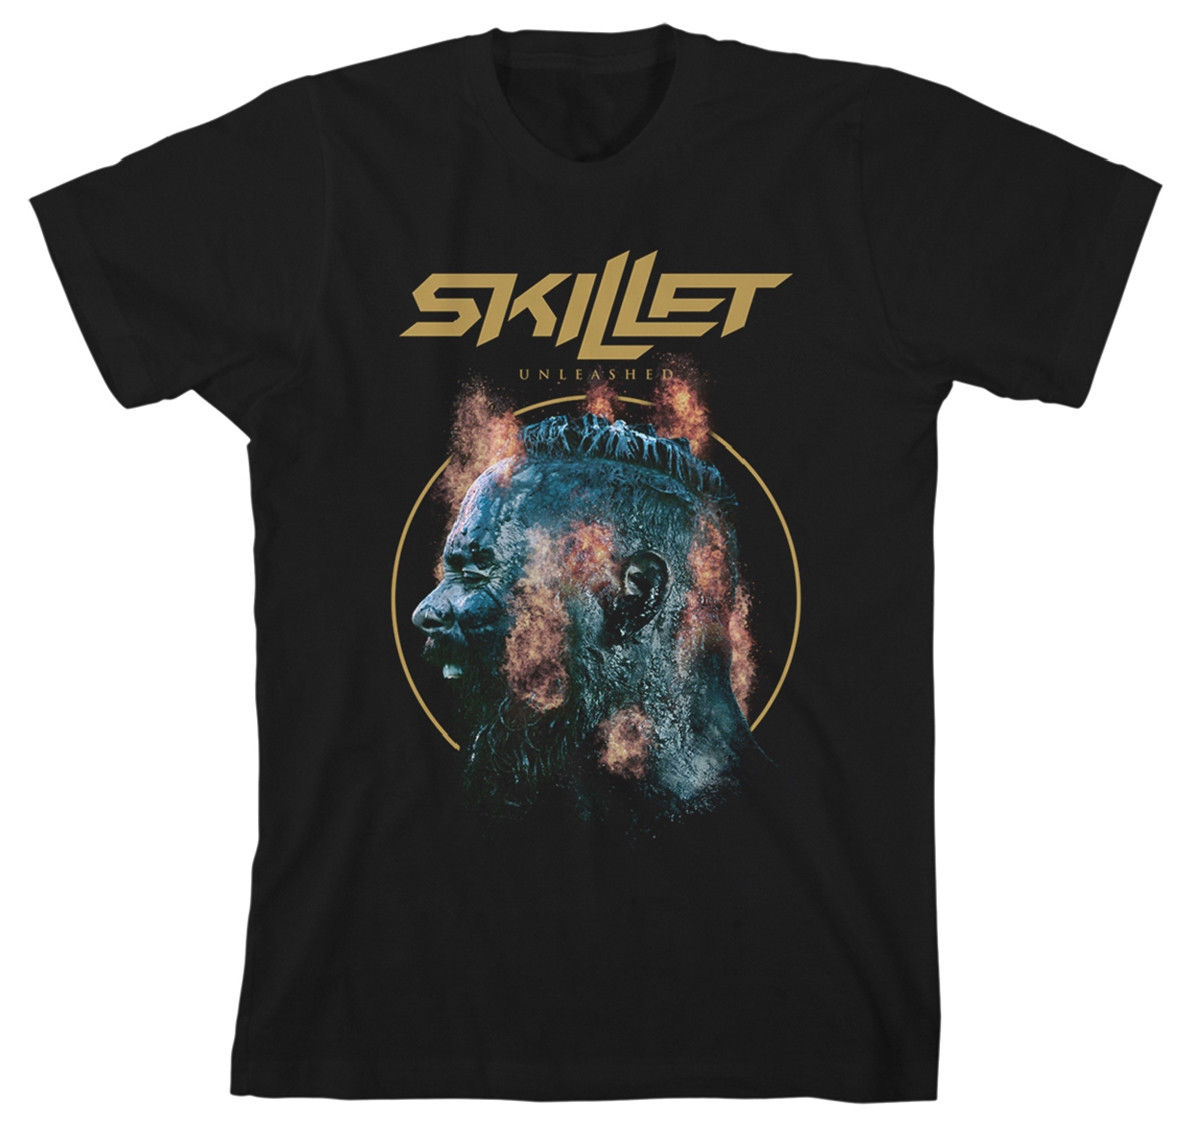 Skillet UNLEASHED EXPLOSION T-SHIRT - NUOVO E ORIGINALE ...